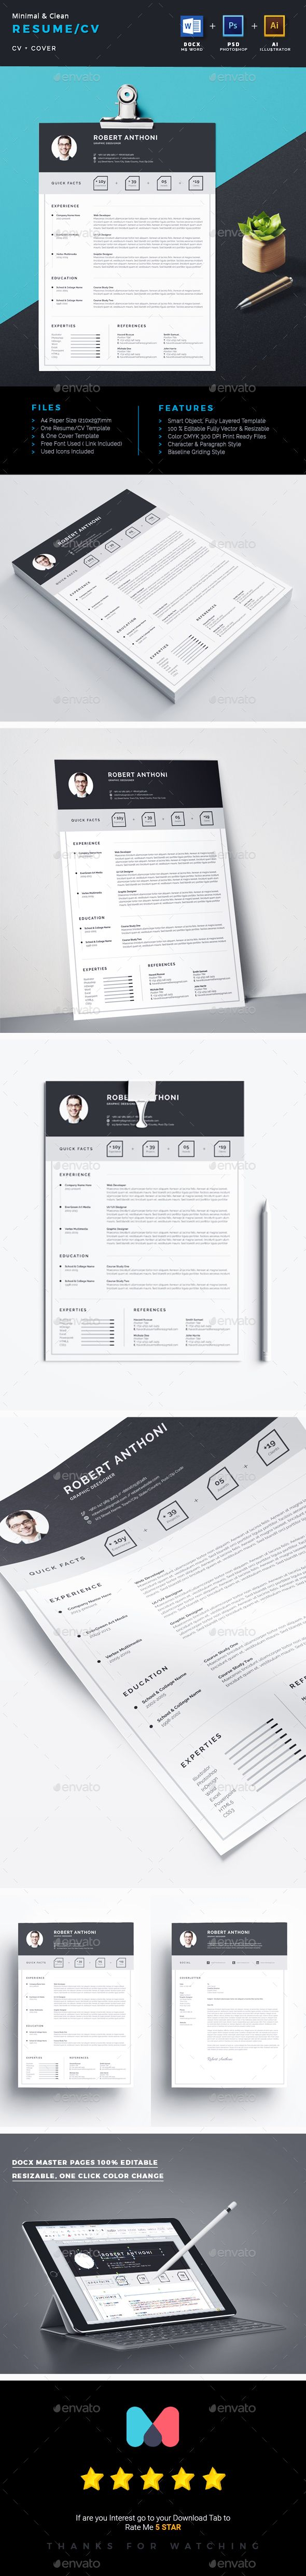 78 Best Cv Images On Pinterest News Creative Advertising And